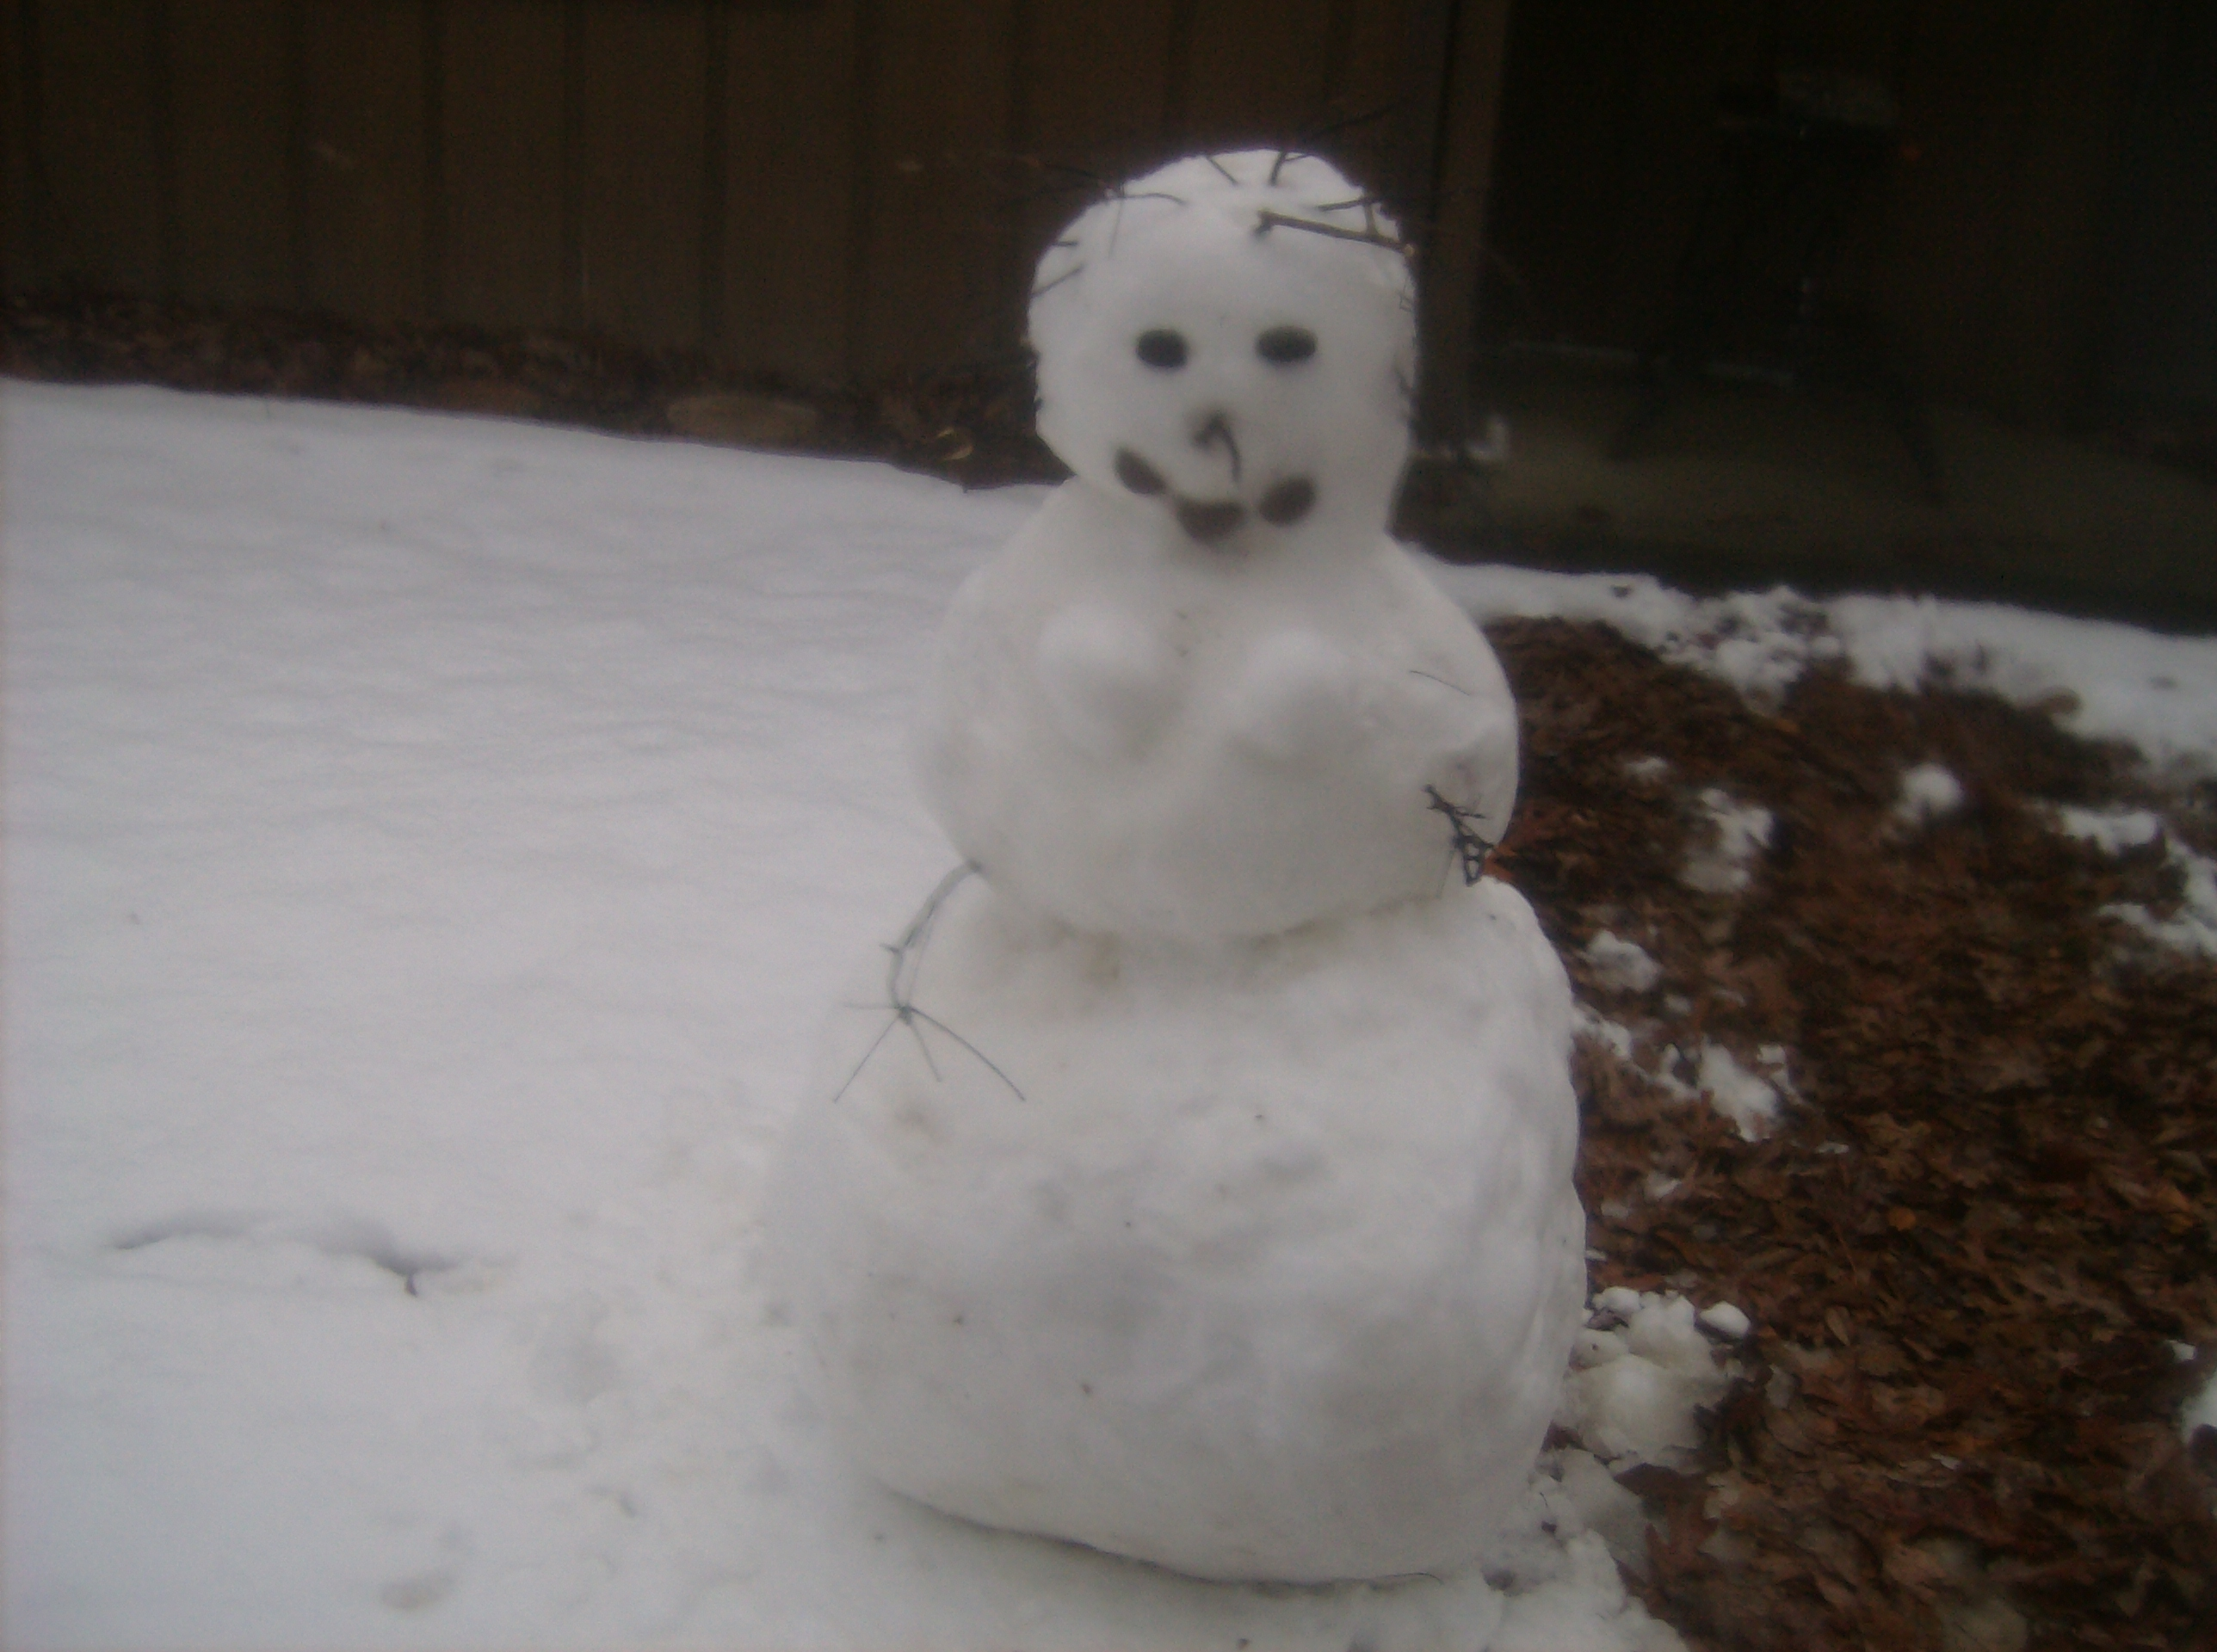 The snow woman I built today